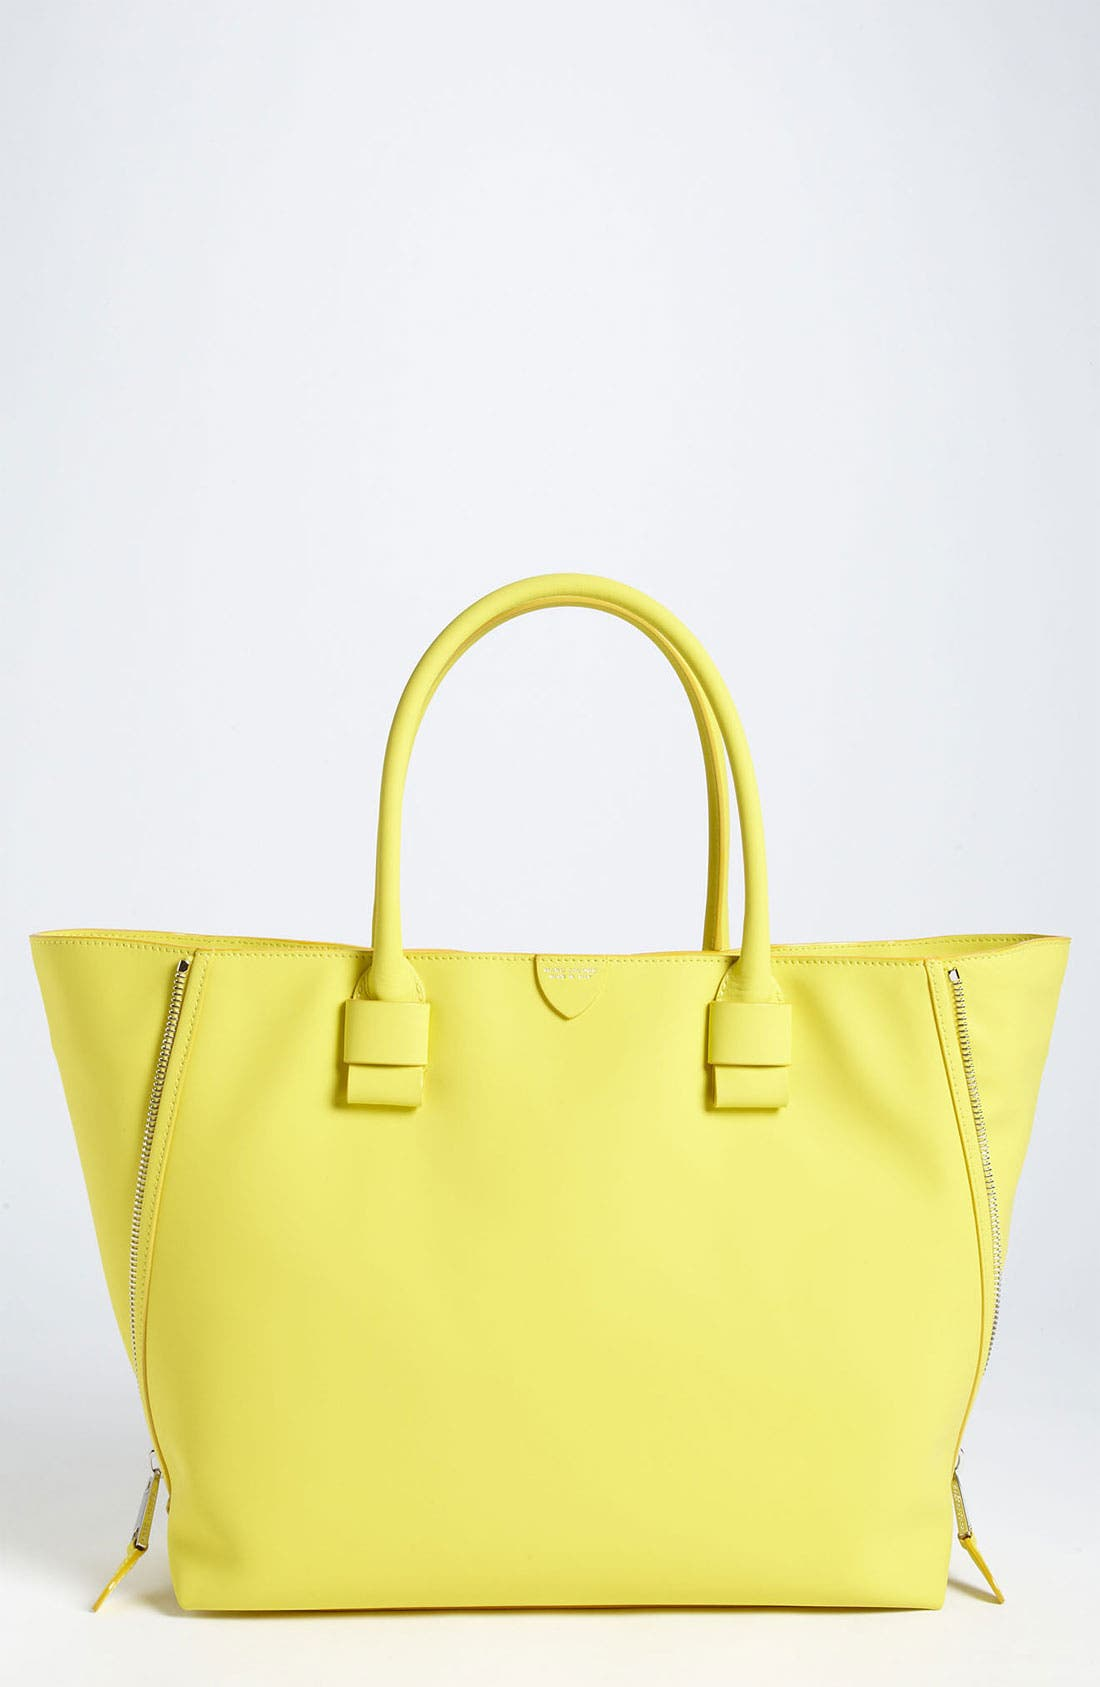 Main Image - MARC JACOBS 'Sheila' Rubberized Leather Tote